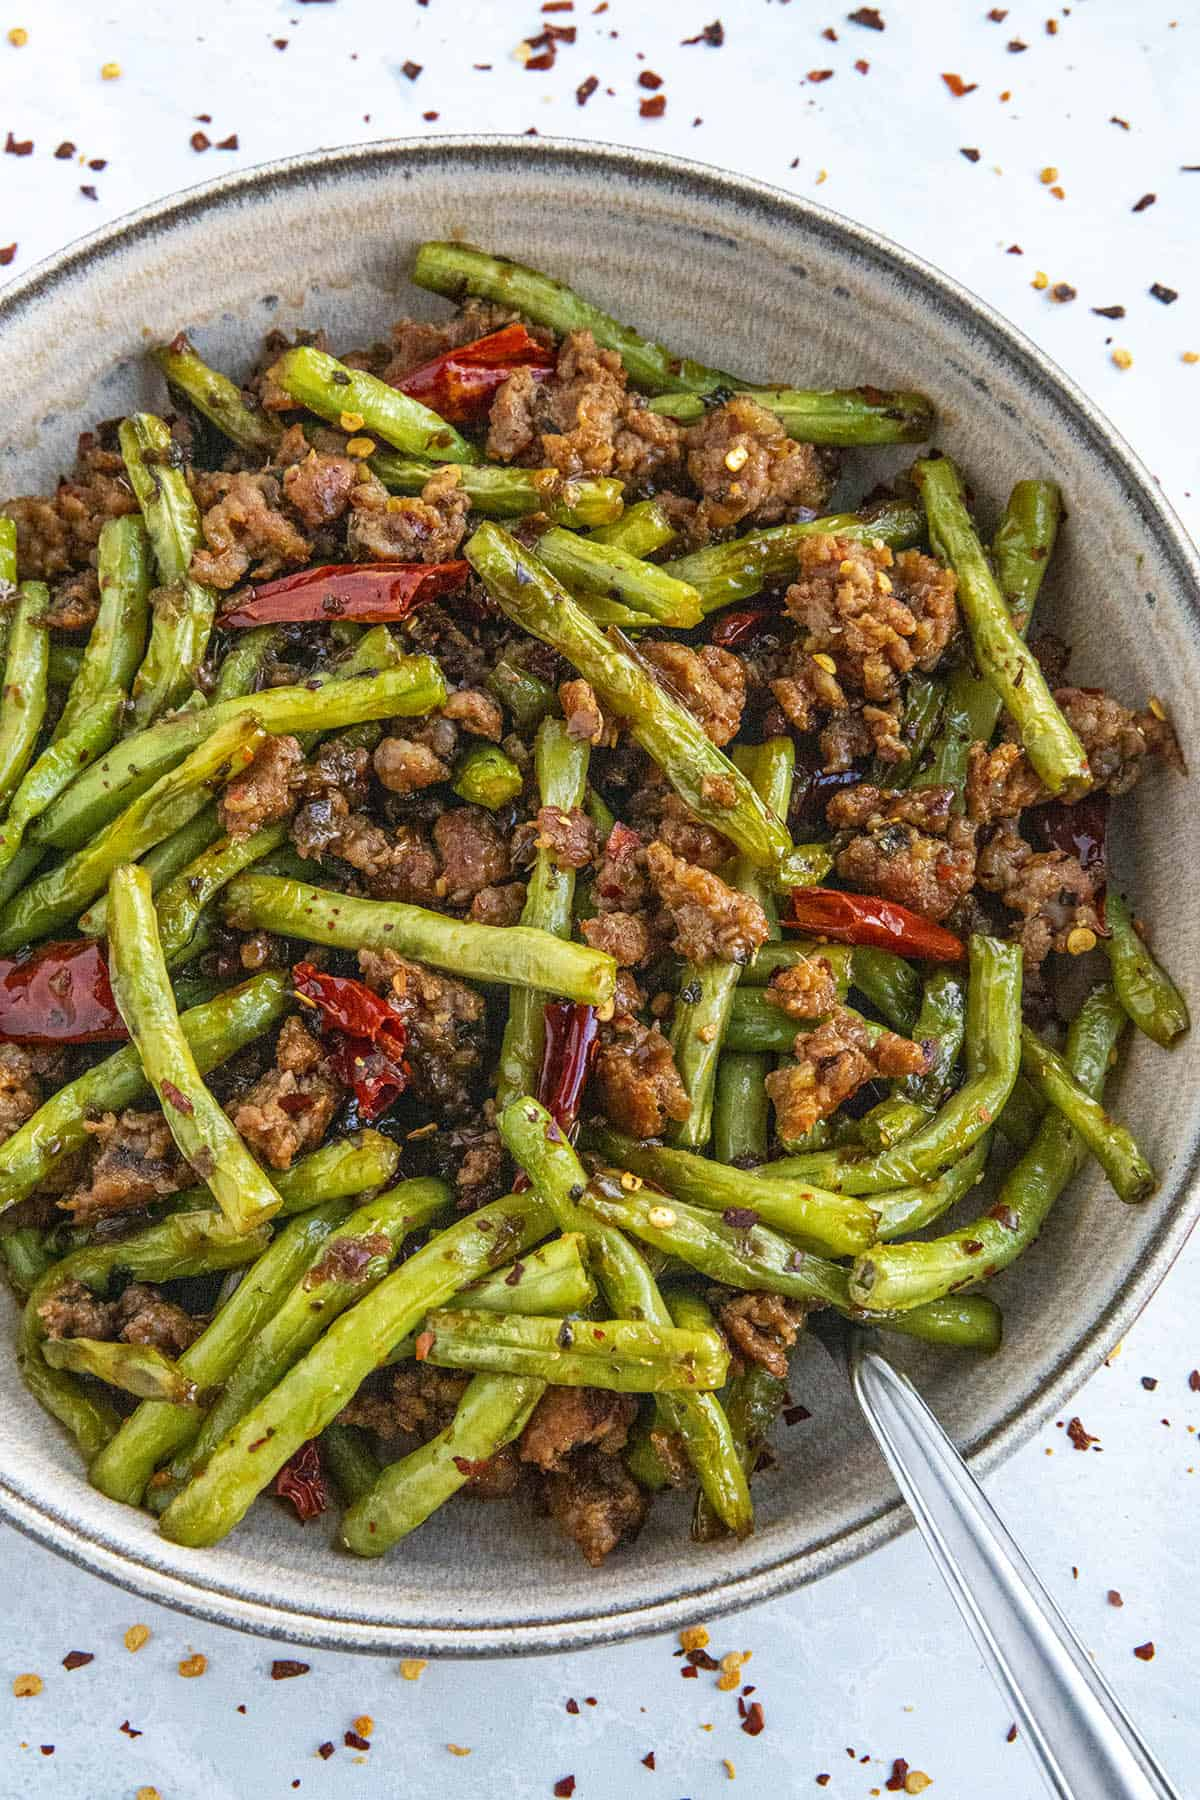 Sichuan Dry Fried Green Beans Recipe in a bowl